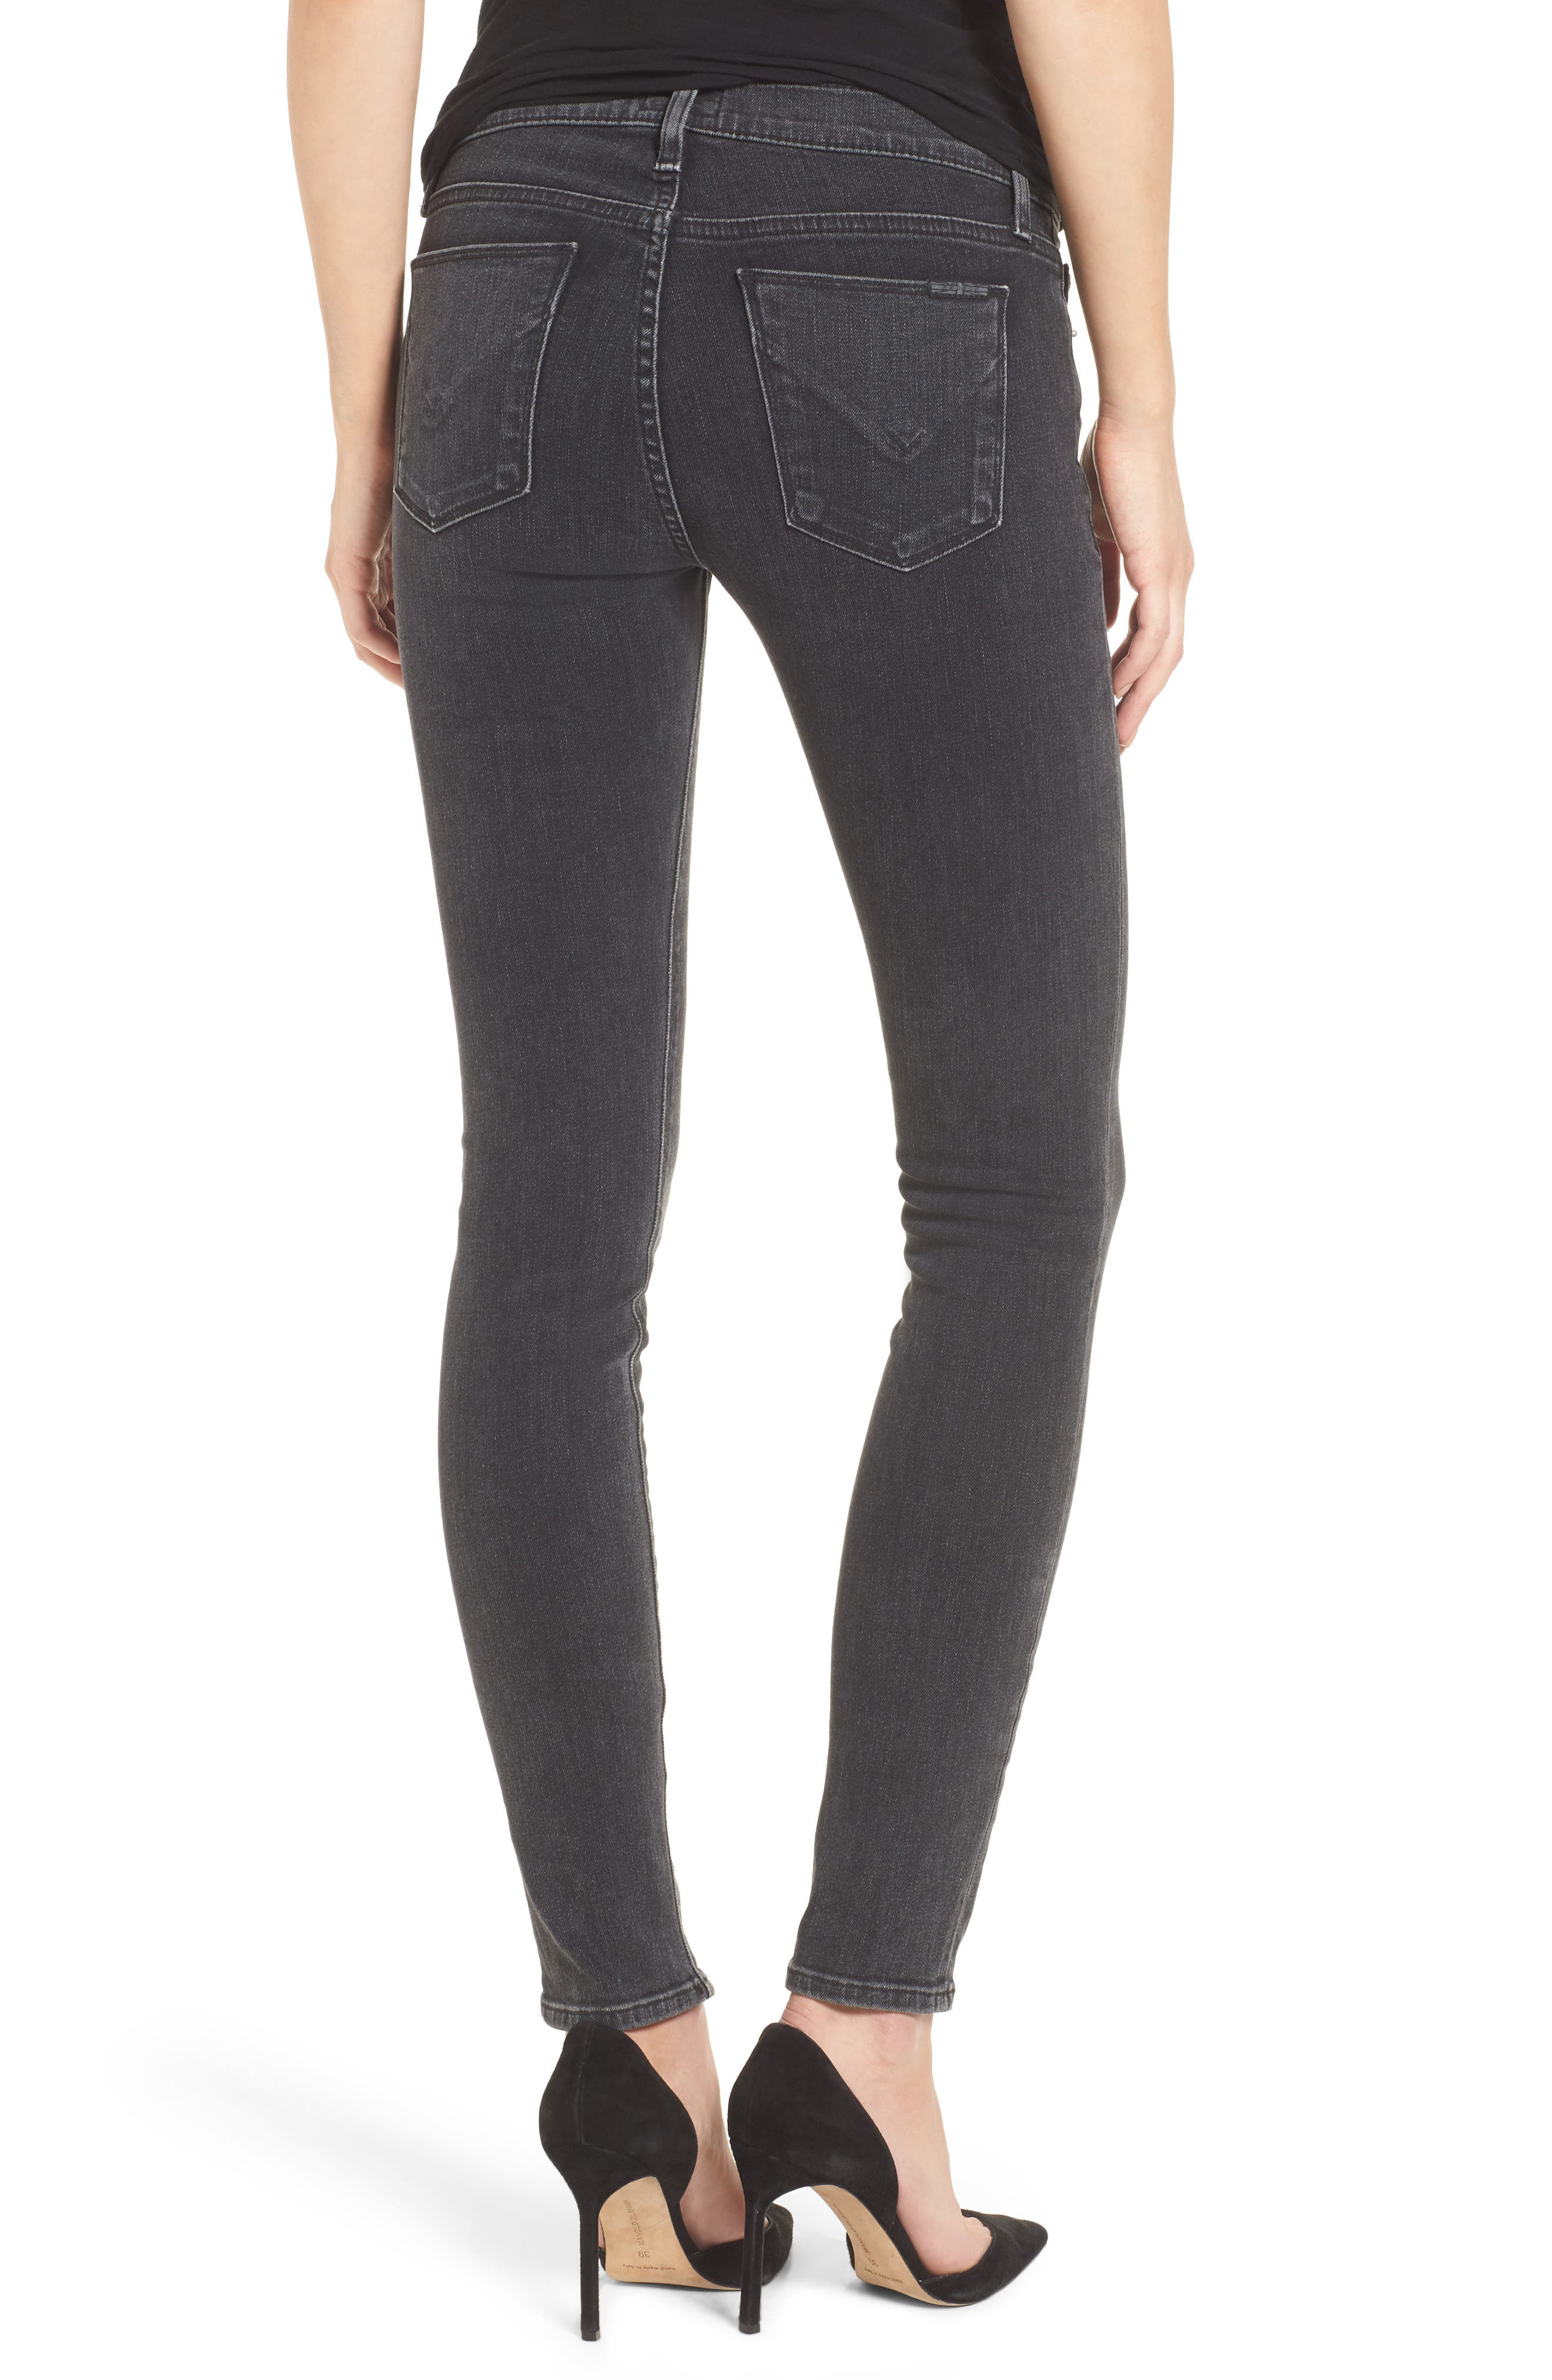 Krista Super Skinny Jeans,                             Alternate thumbnail 2, color,                             001